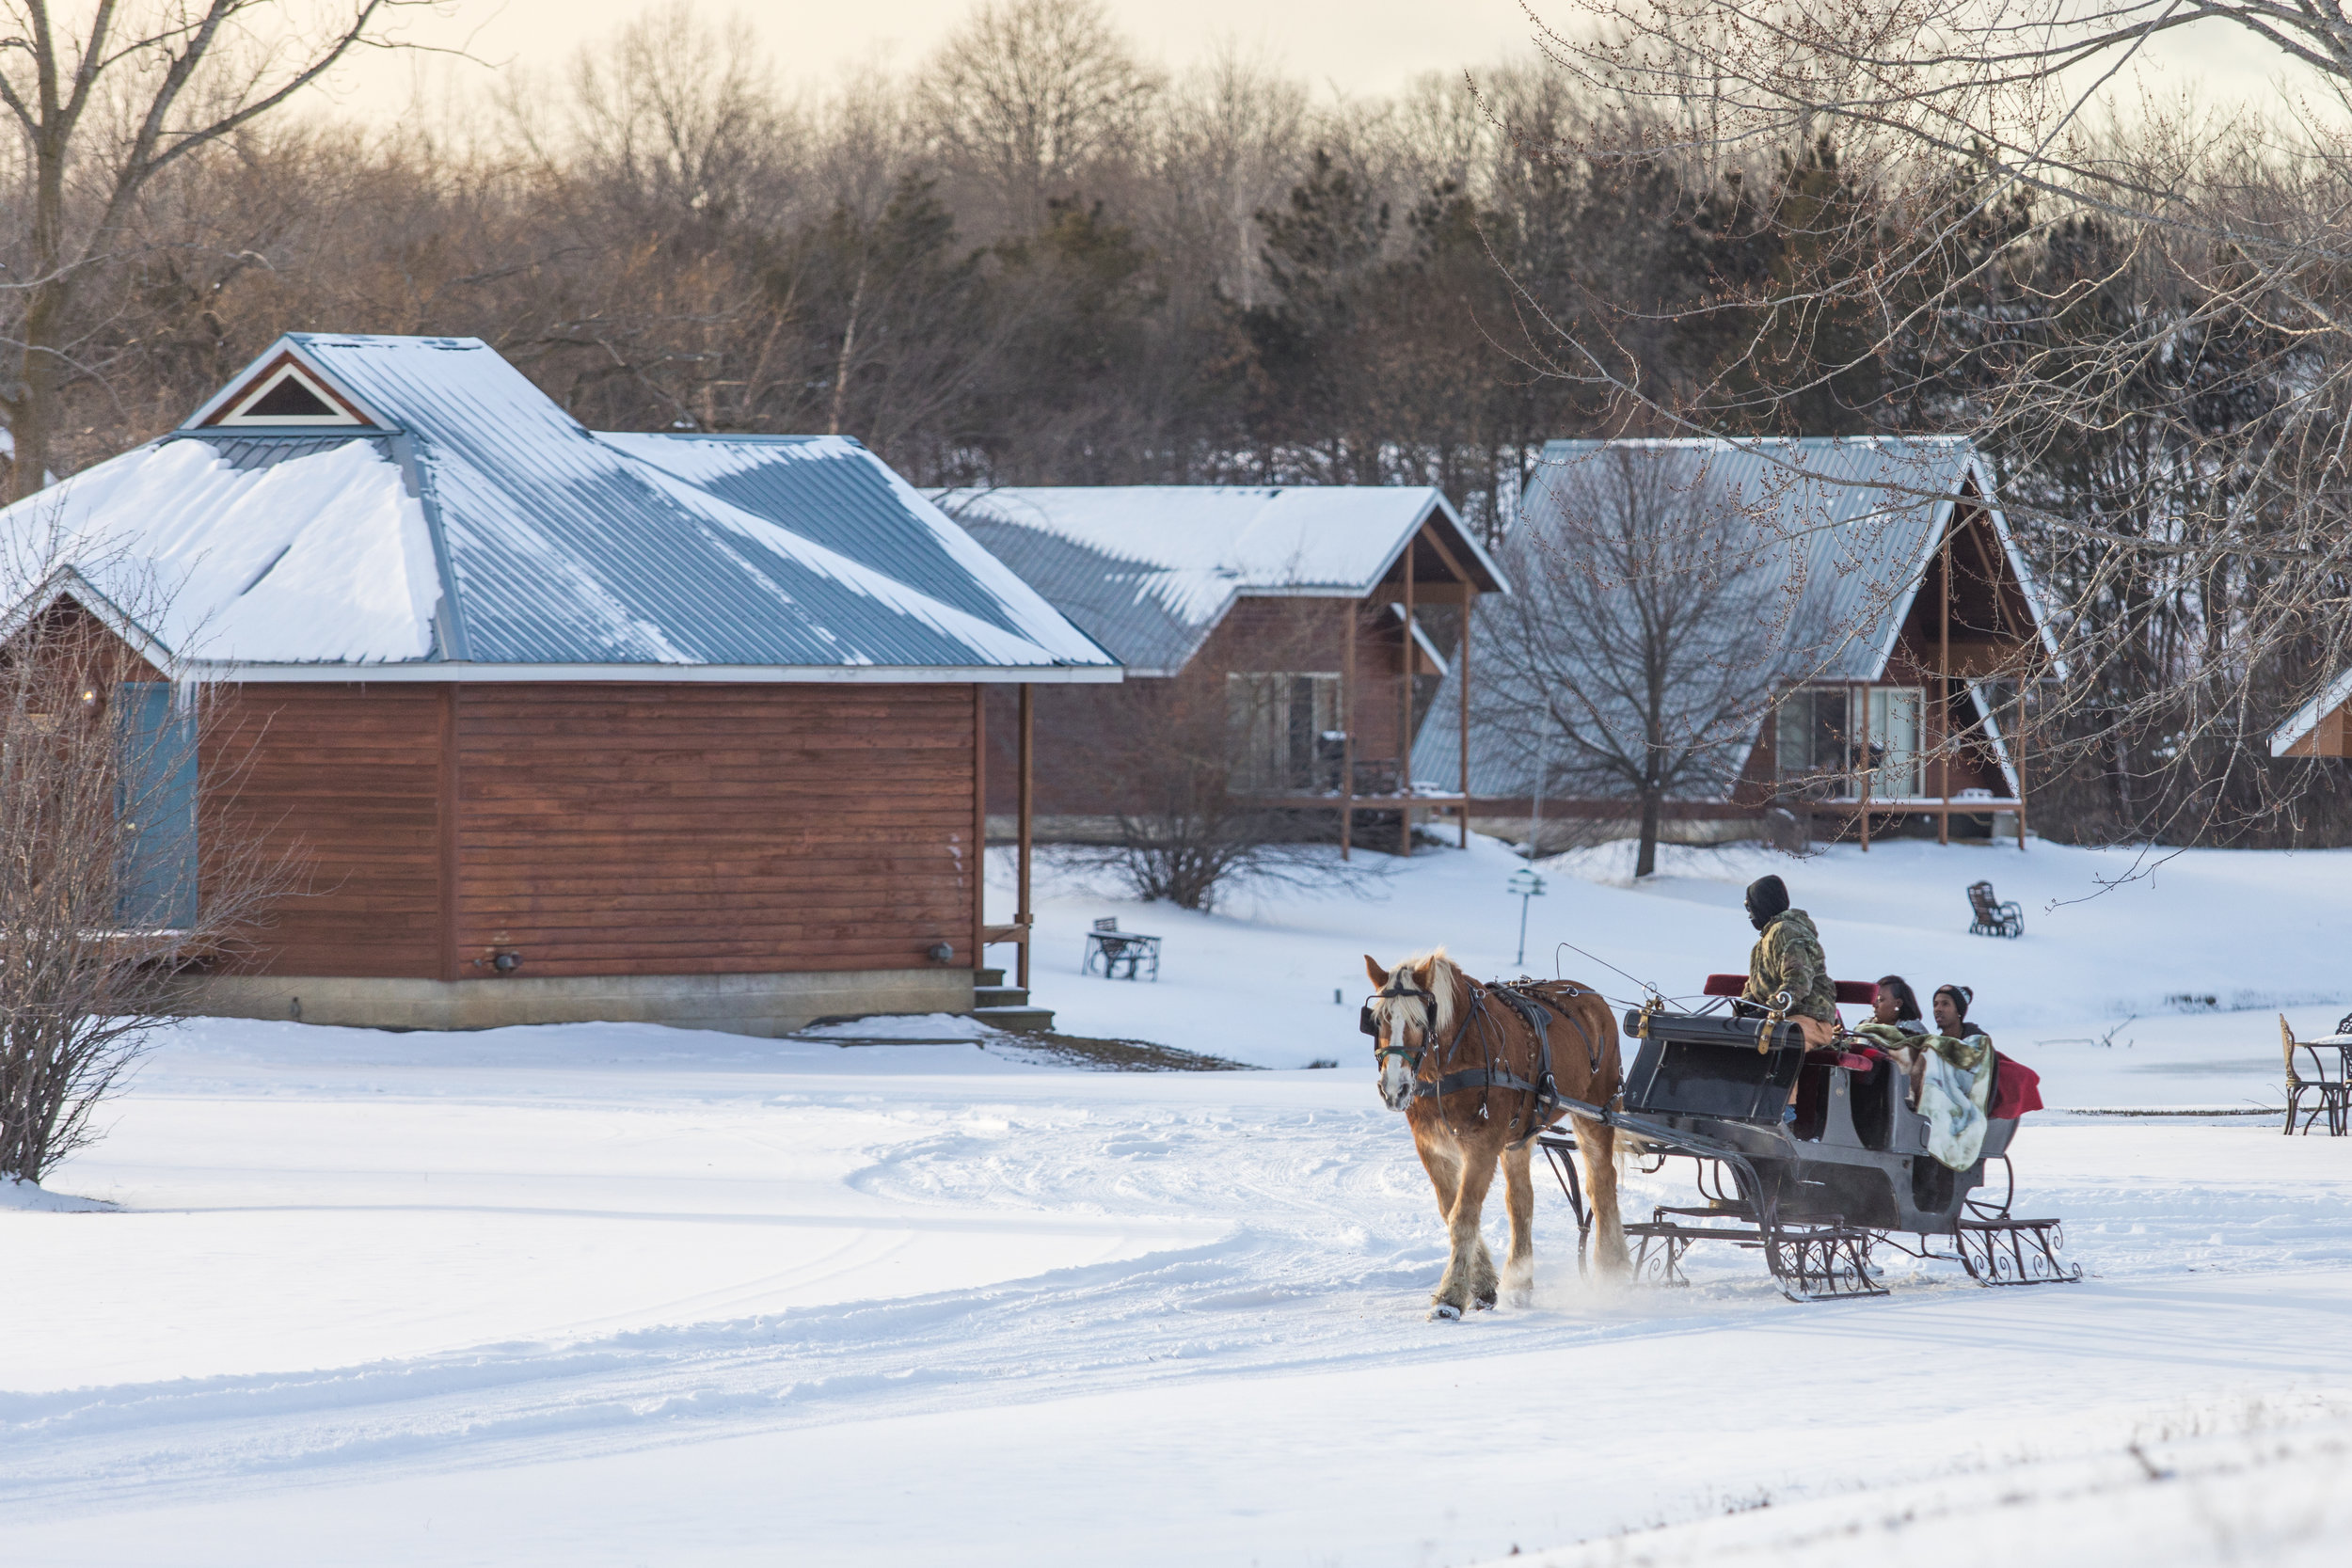 Horse drawn carriage in the snow passing the cabins at Serenity Springs.